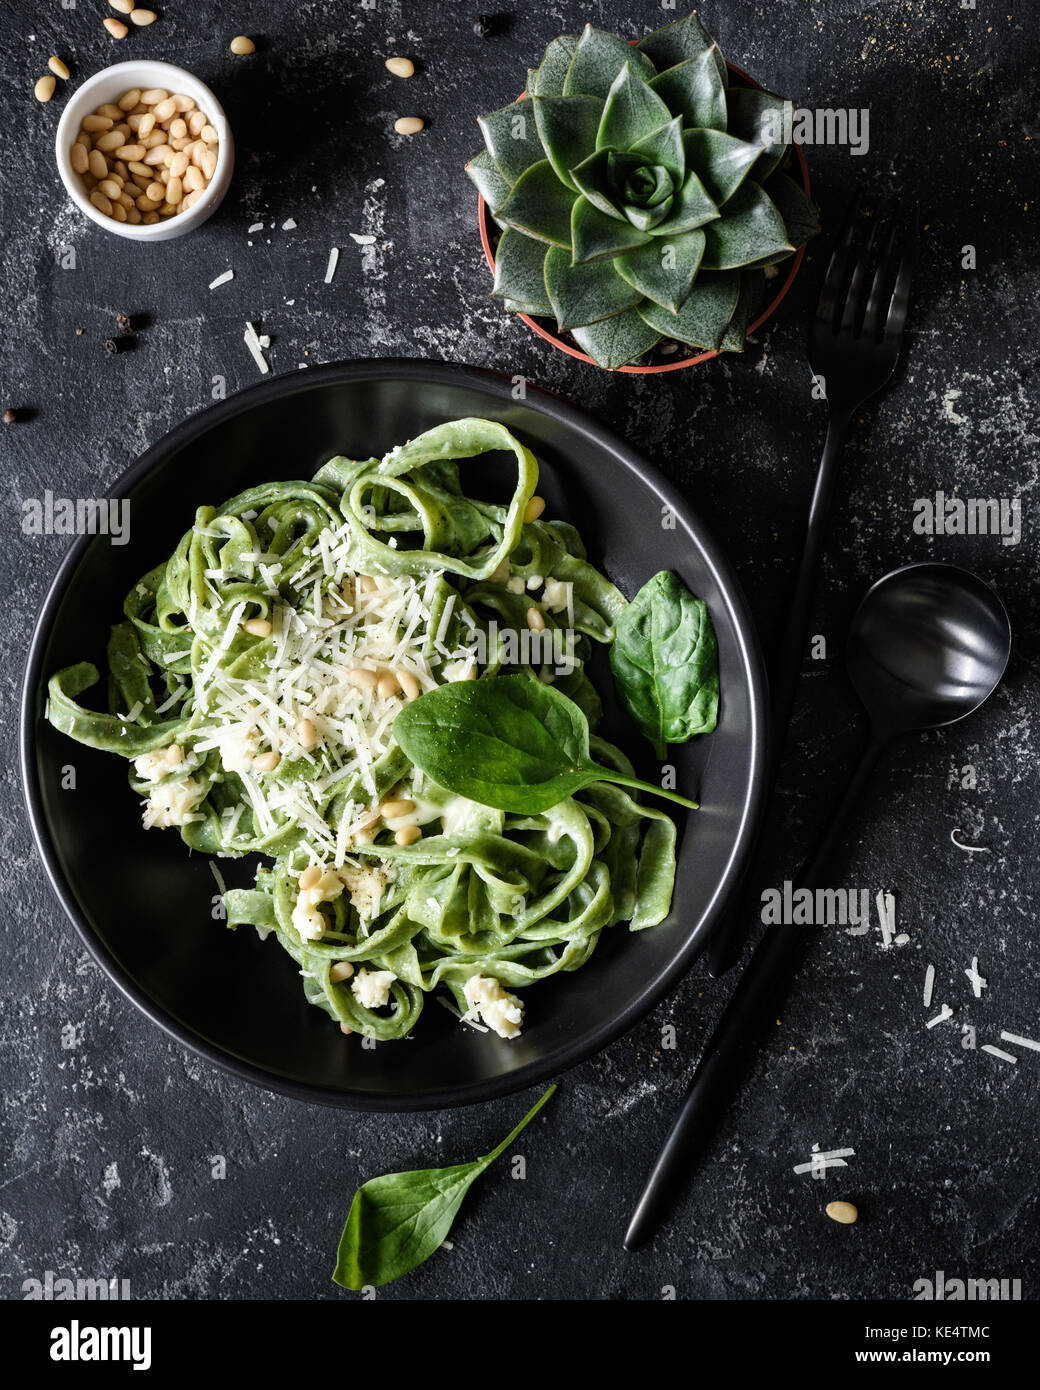 Green spinach pasta with cheese and pine nuts in a black bowl with black cutlery. Gourmet italian meal. Top view - Stock Image